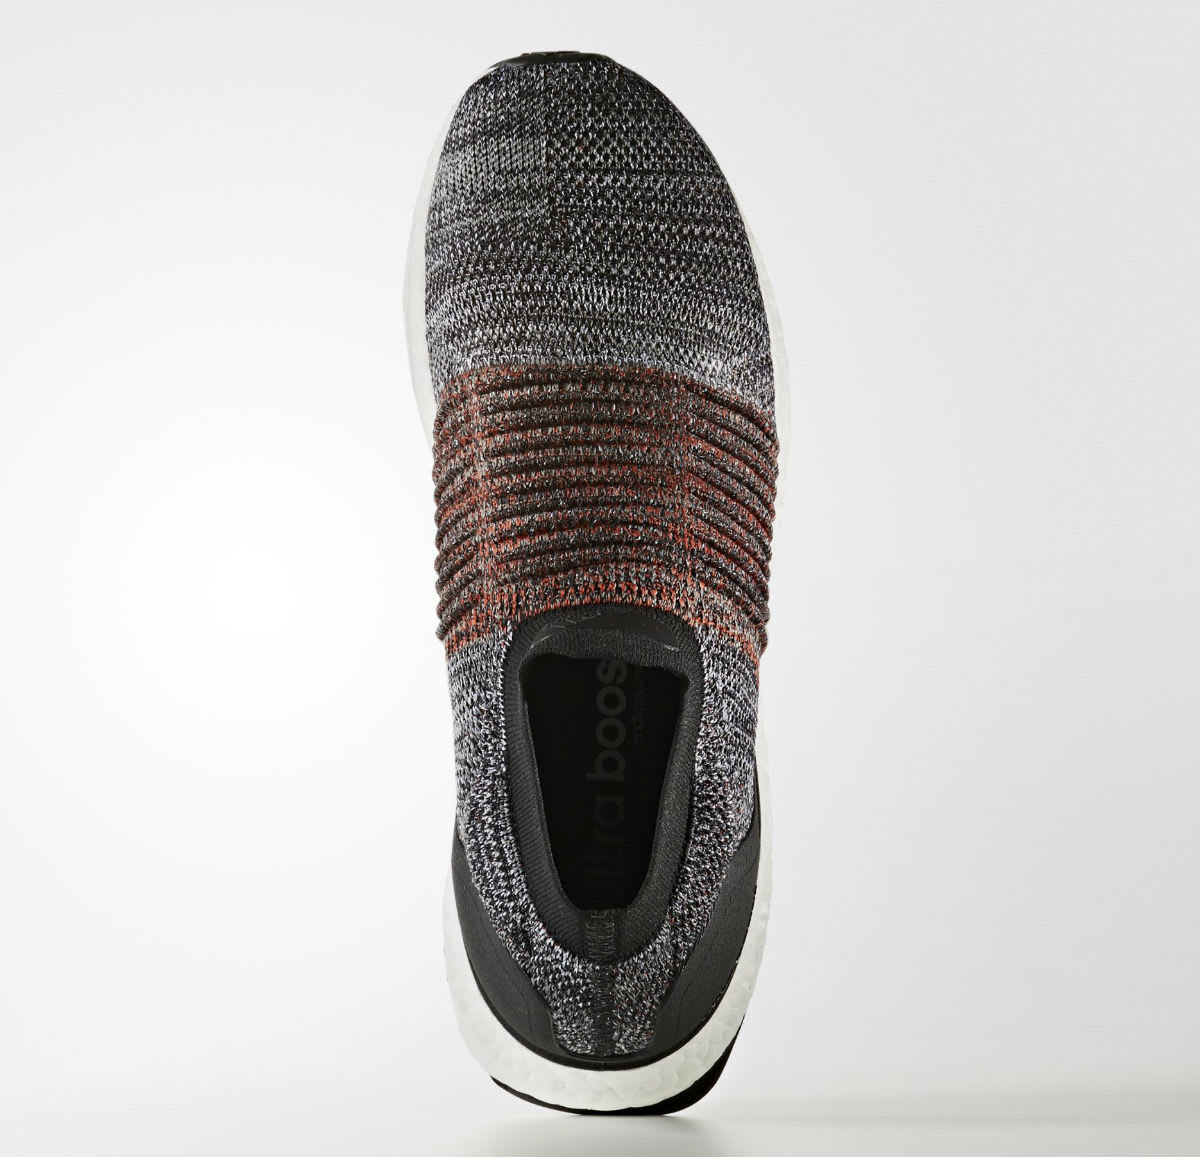 Adidas Ultra Boost Laceless Black White Orange Release Date Top S80769